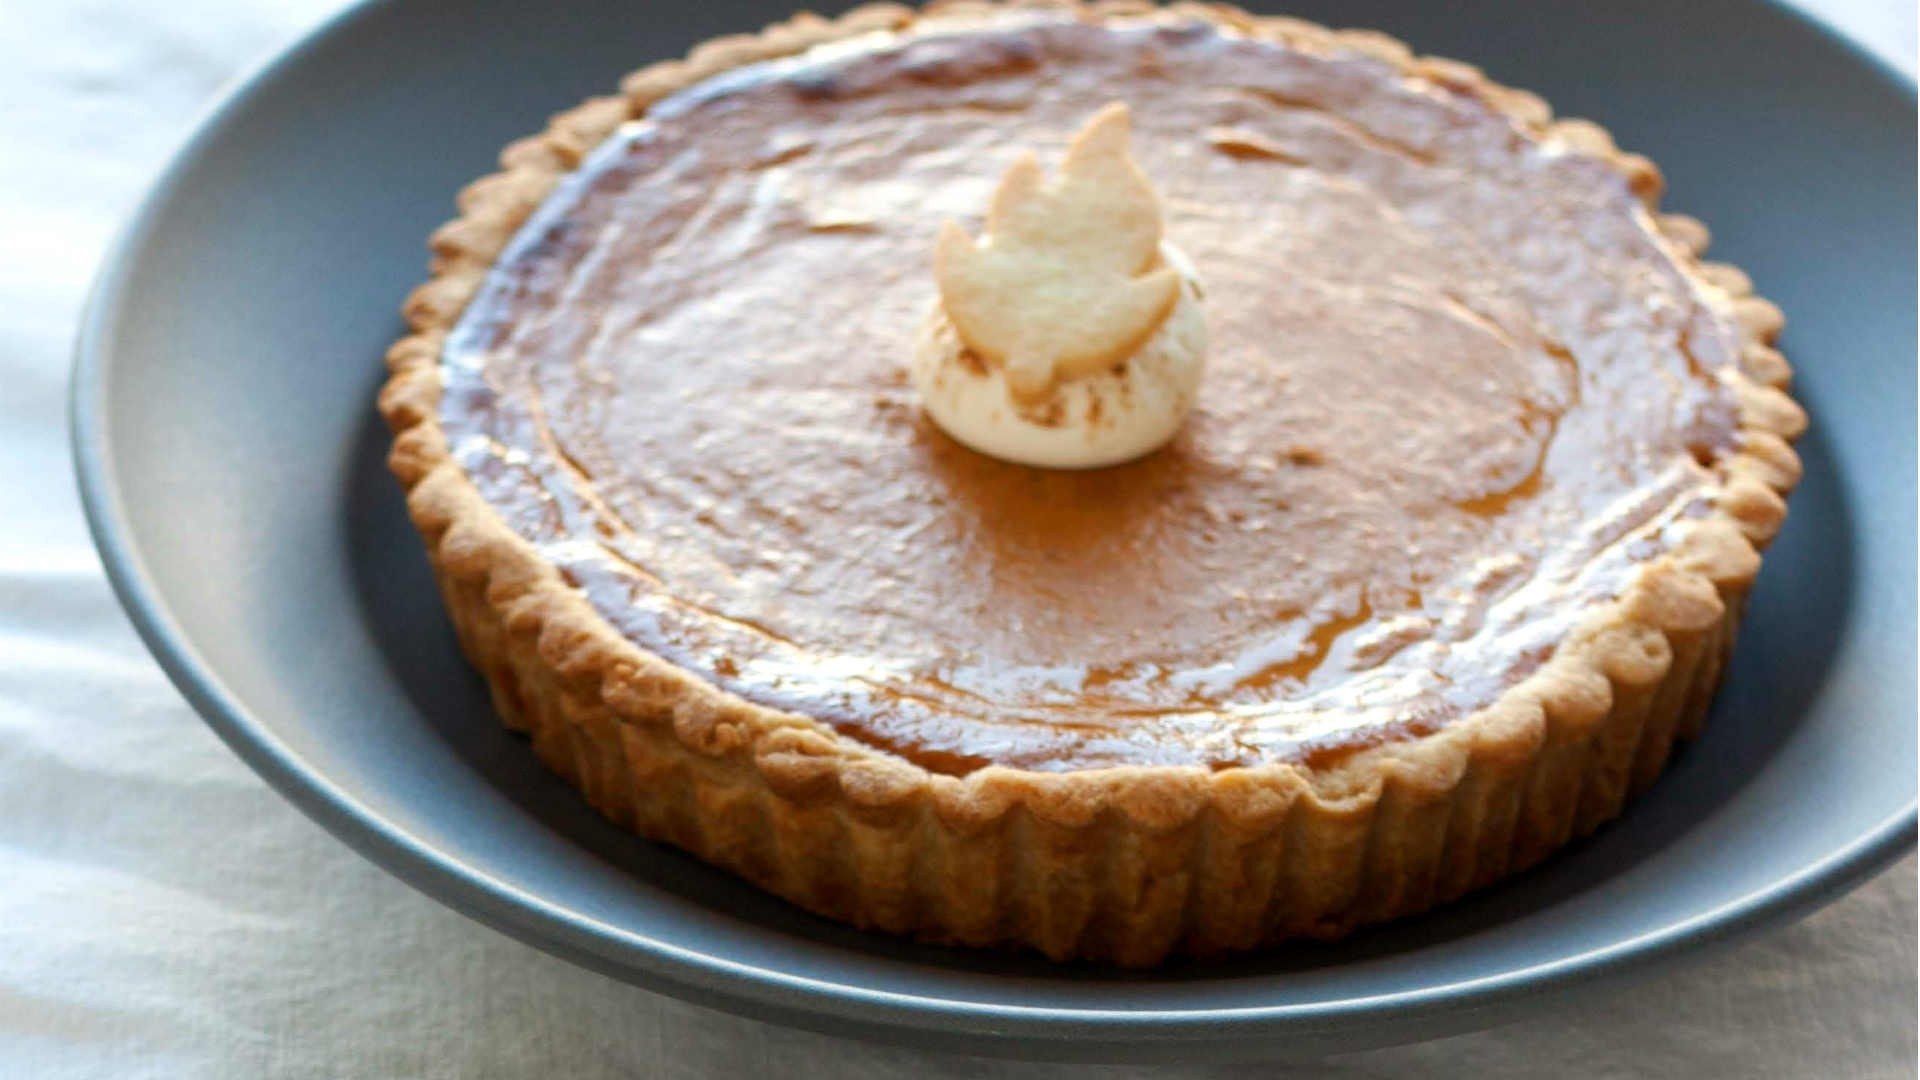 Bobbette and Belle's Pumpkin Pie